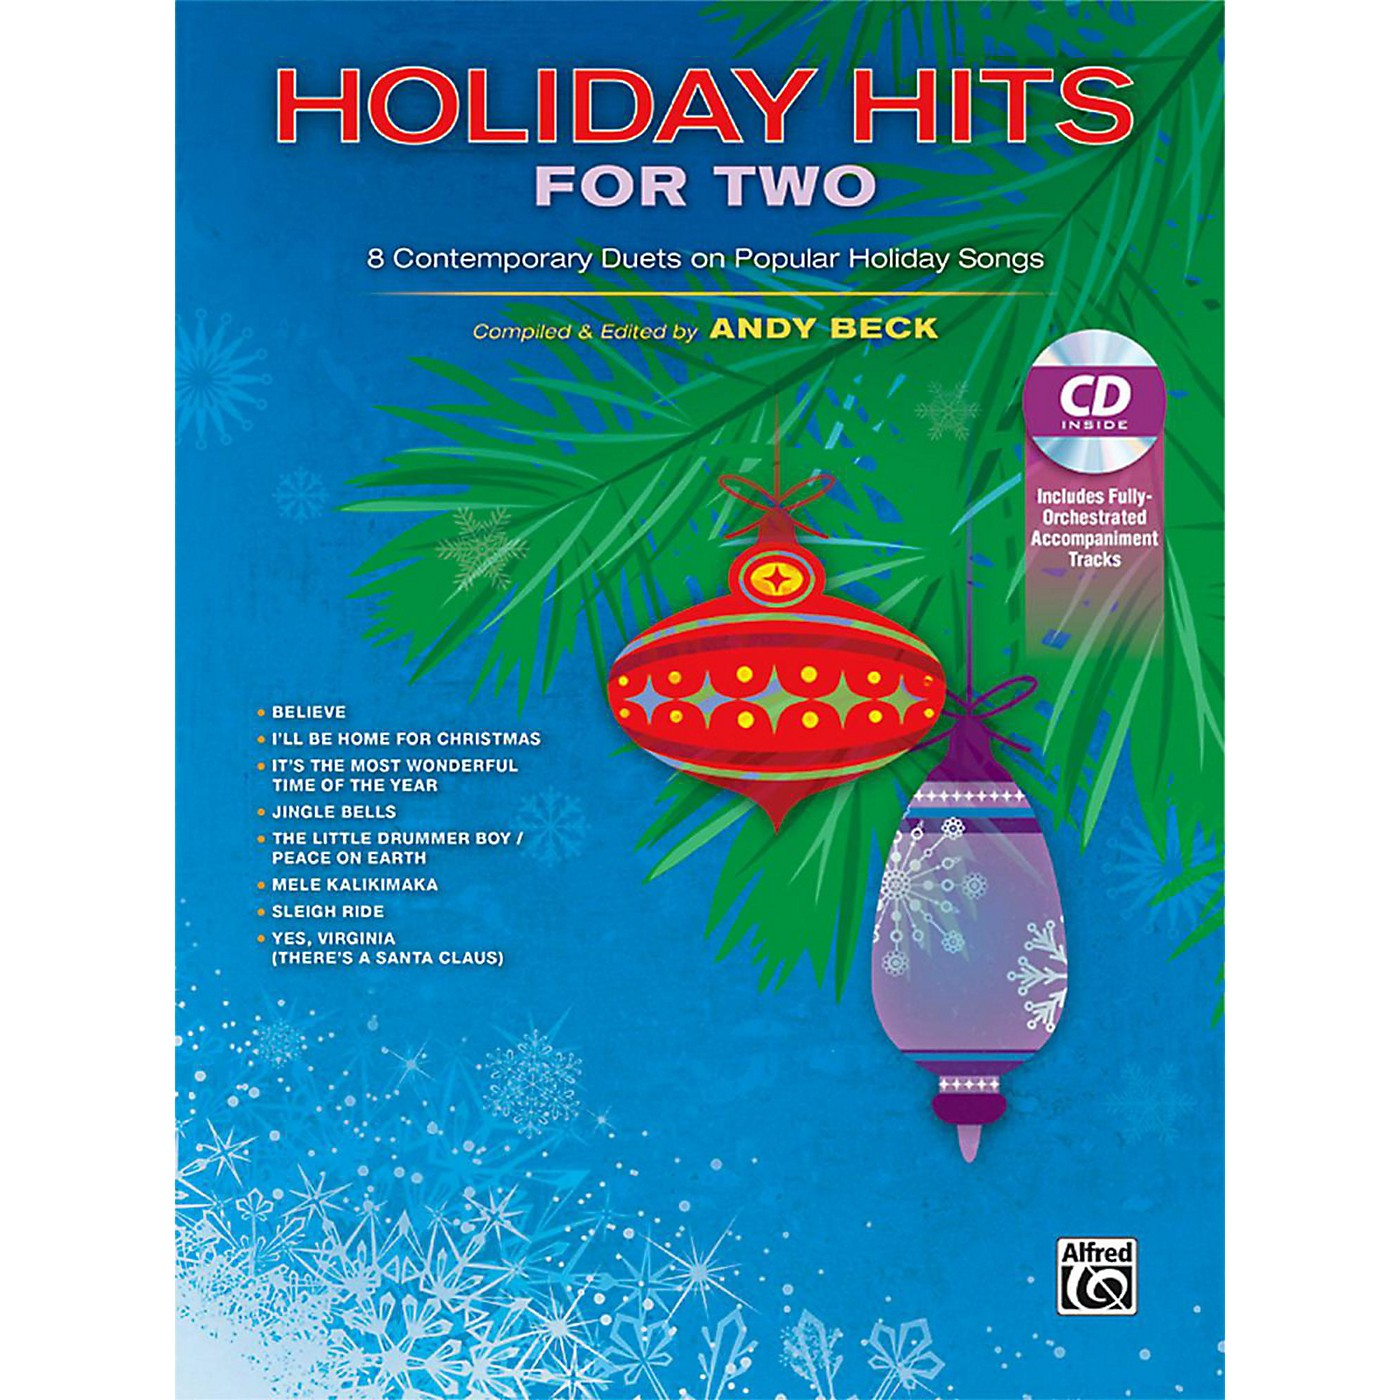 Alfred Holiday Hits for Two Vocal Collection (Book/CD) thumbnail